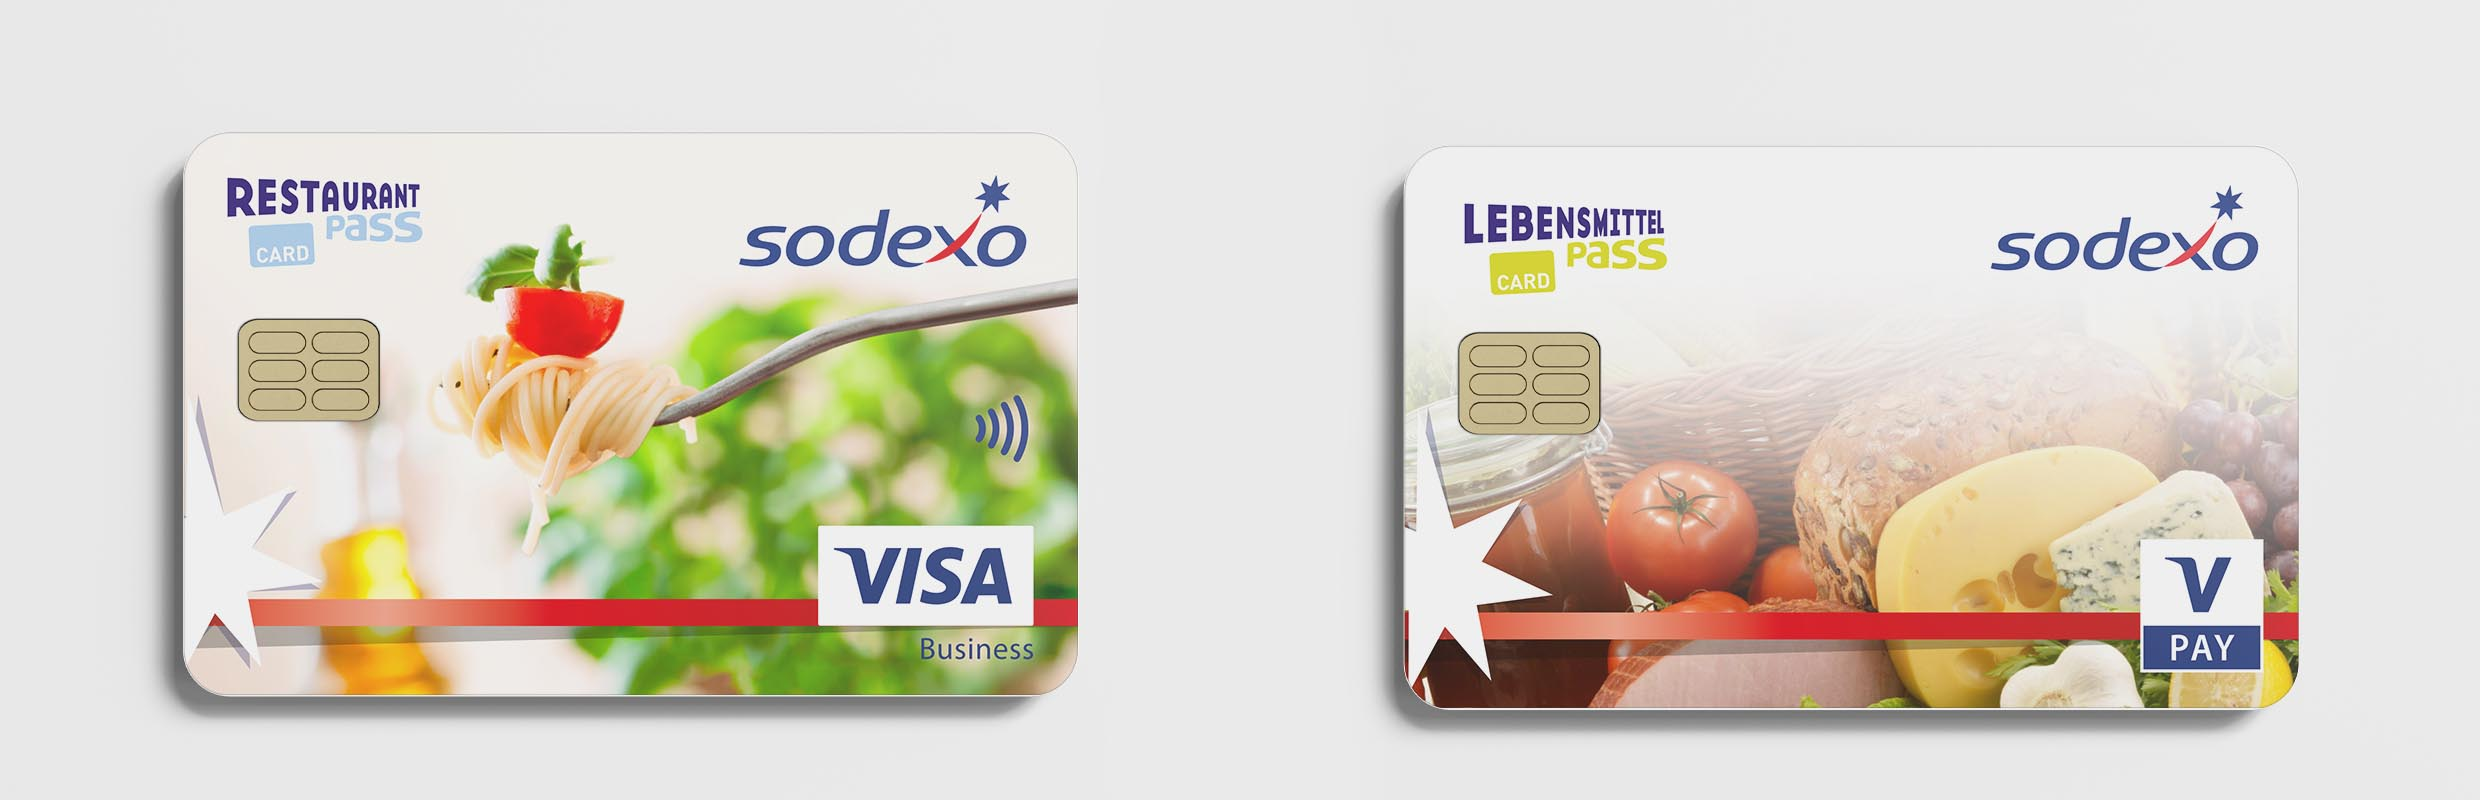 Sodexo-Restaurant-Pass-Card-und-Lenensmittel-Pass-Card